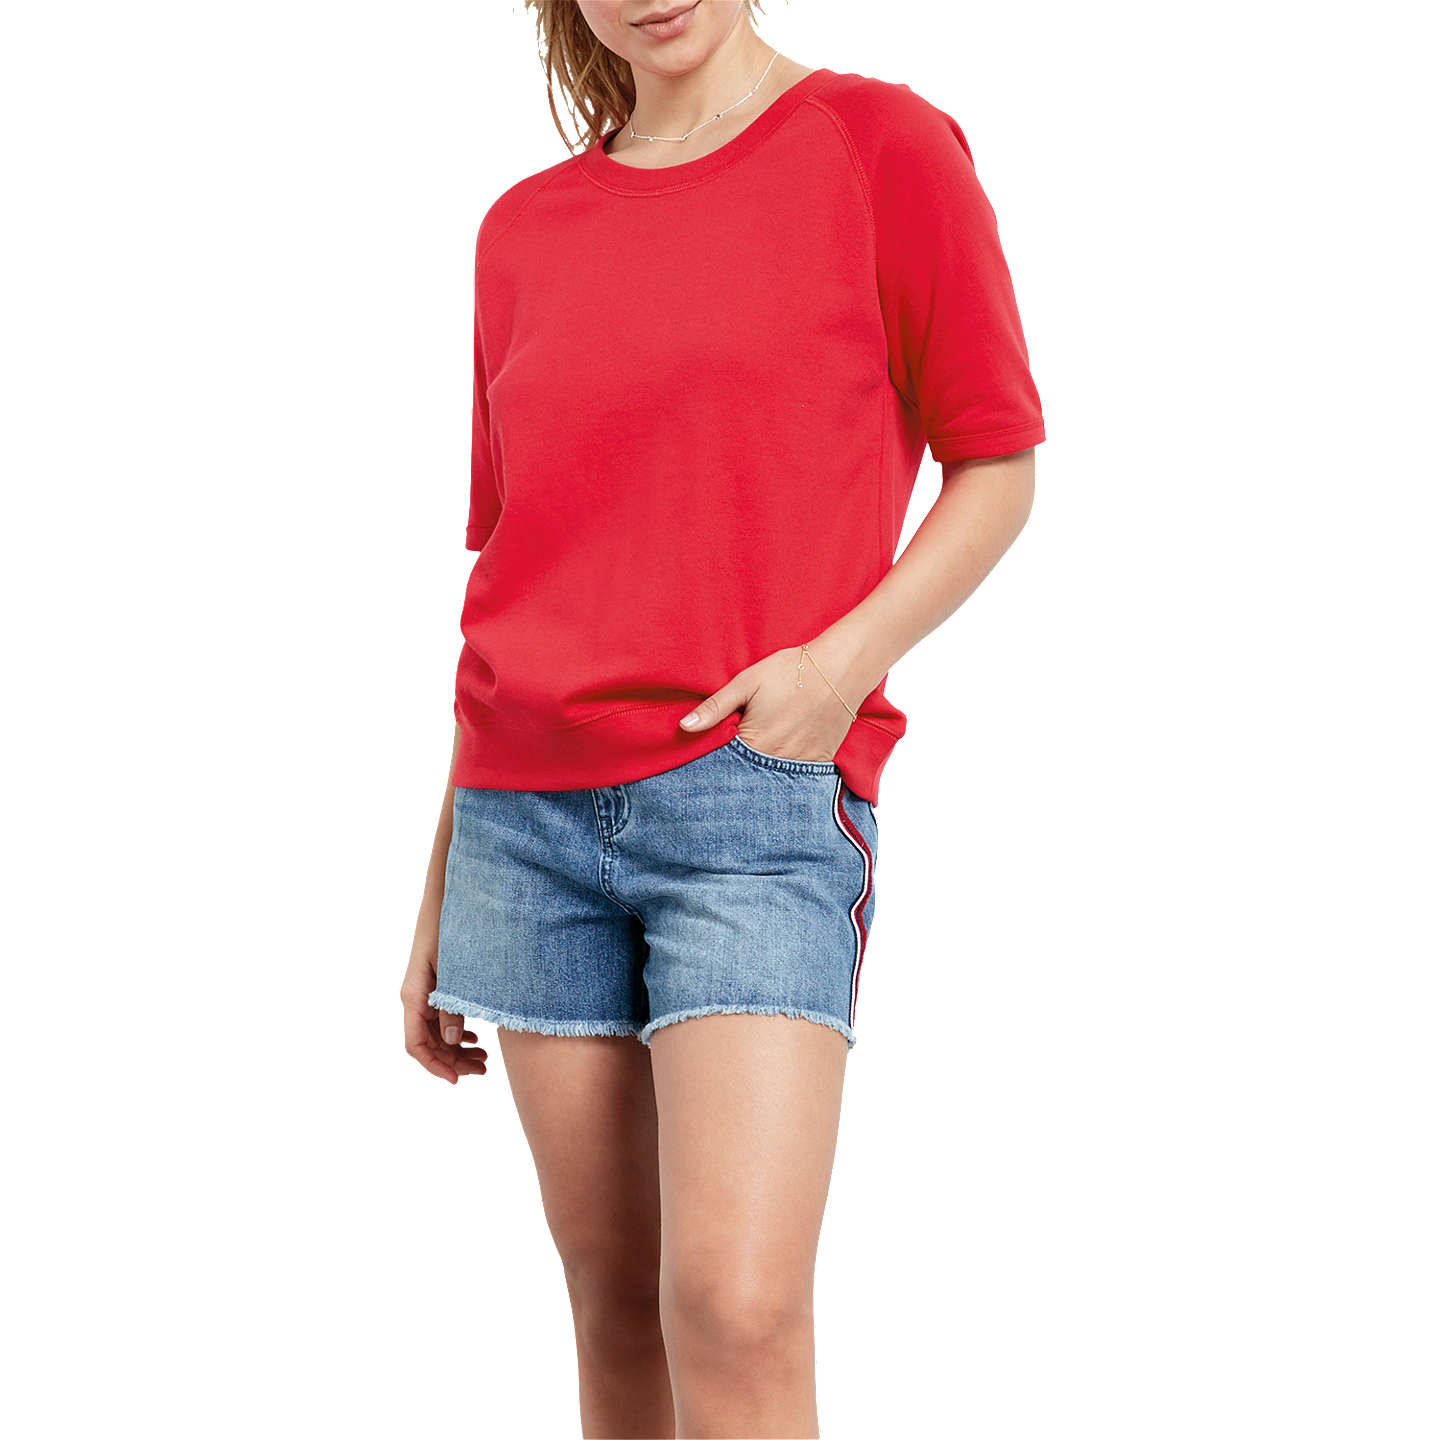 Hush Puppies Washed Sloppy Joe Sweat Top Low Price Online Outlet Discount Authentic fQEejVHoeW